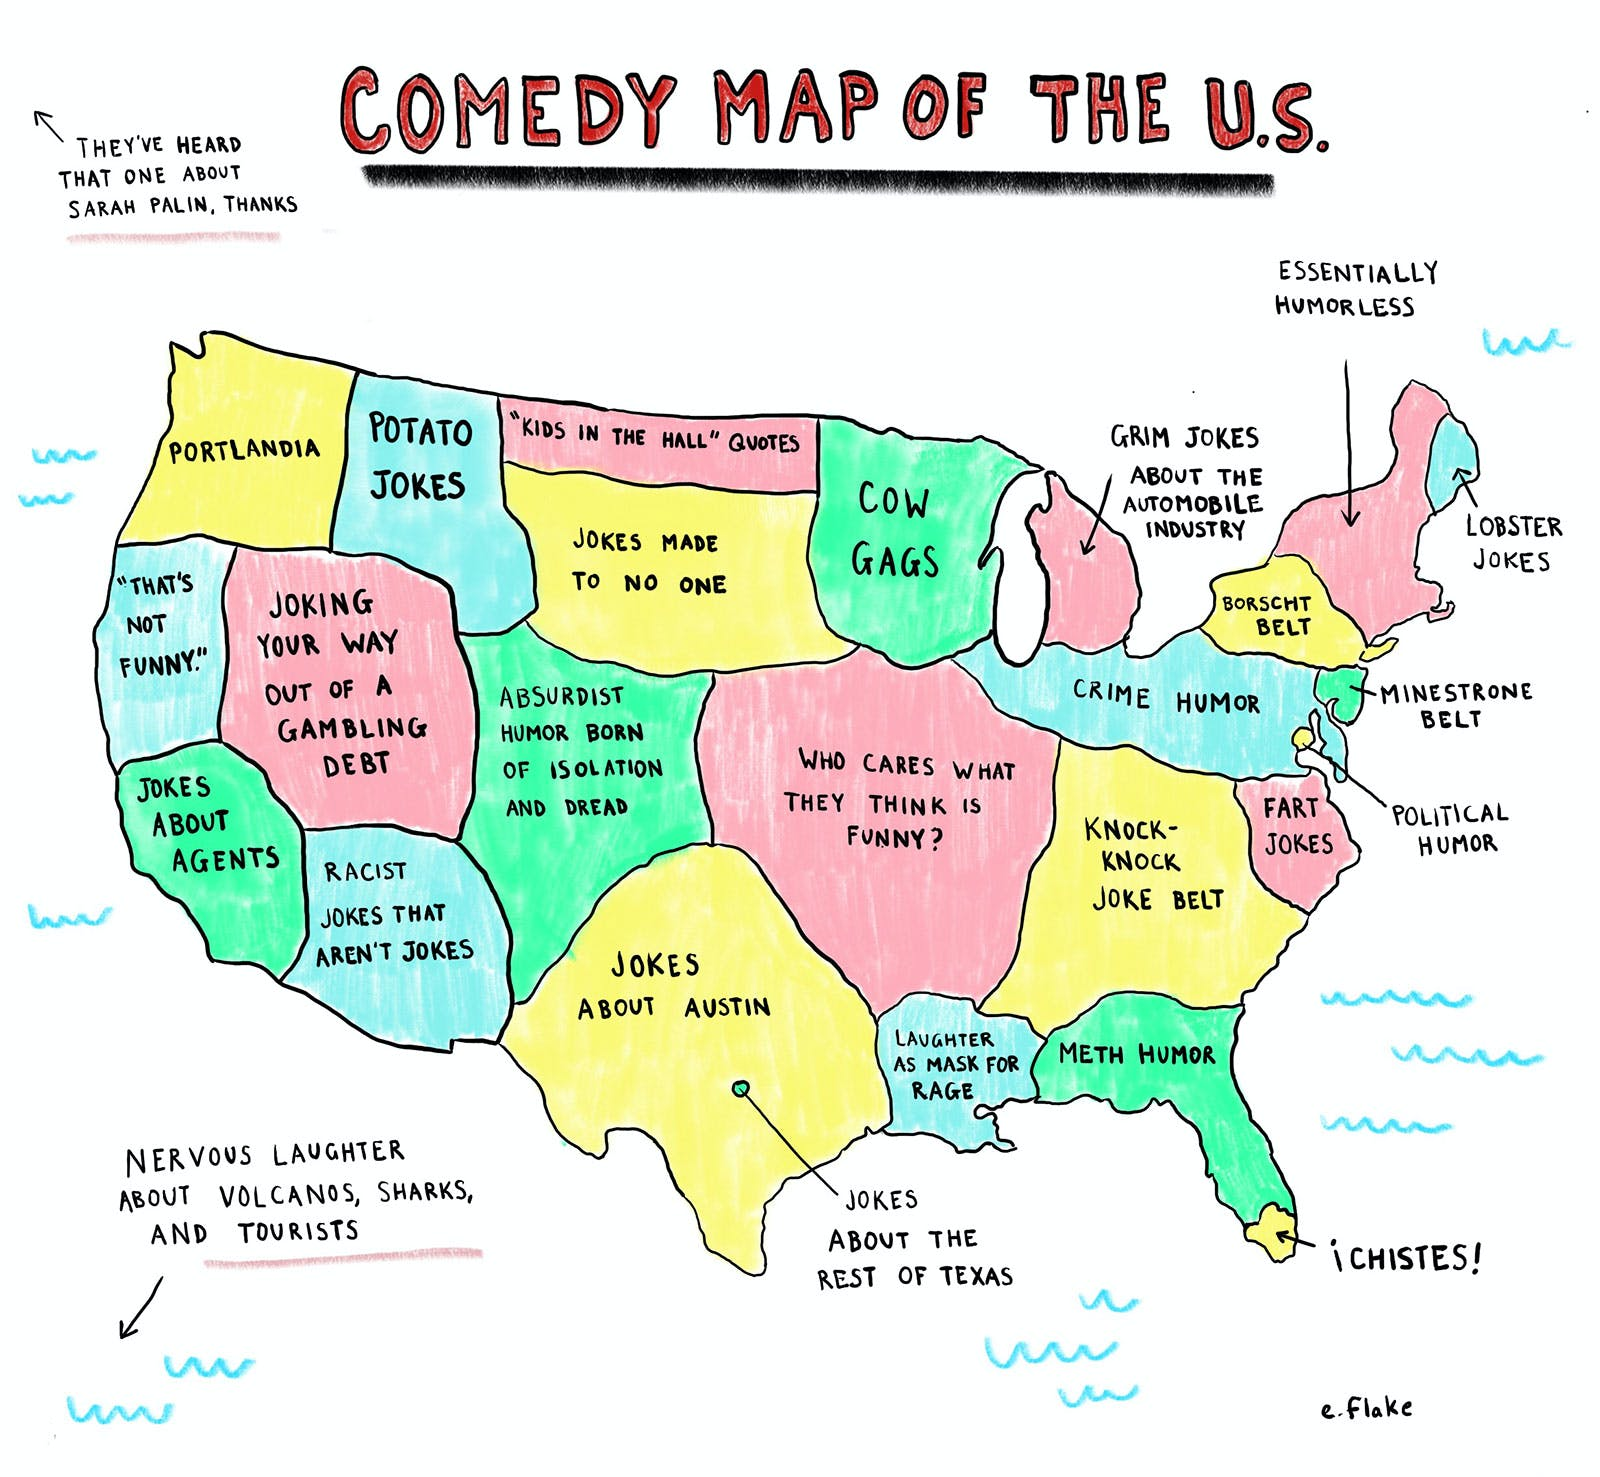 comedy map of the us by emily flake